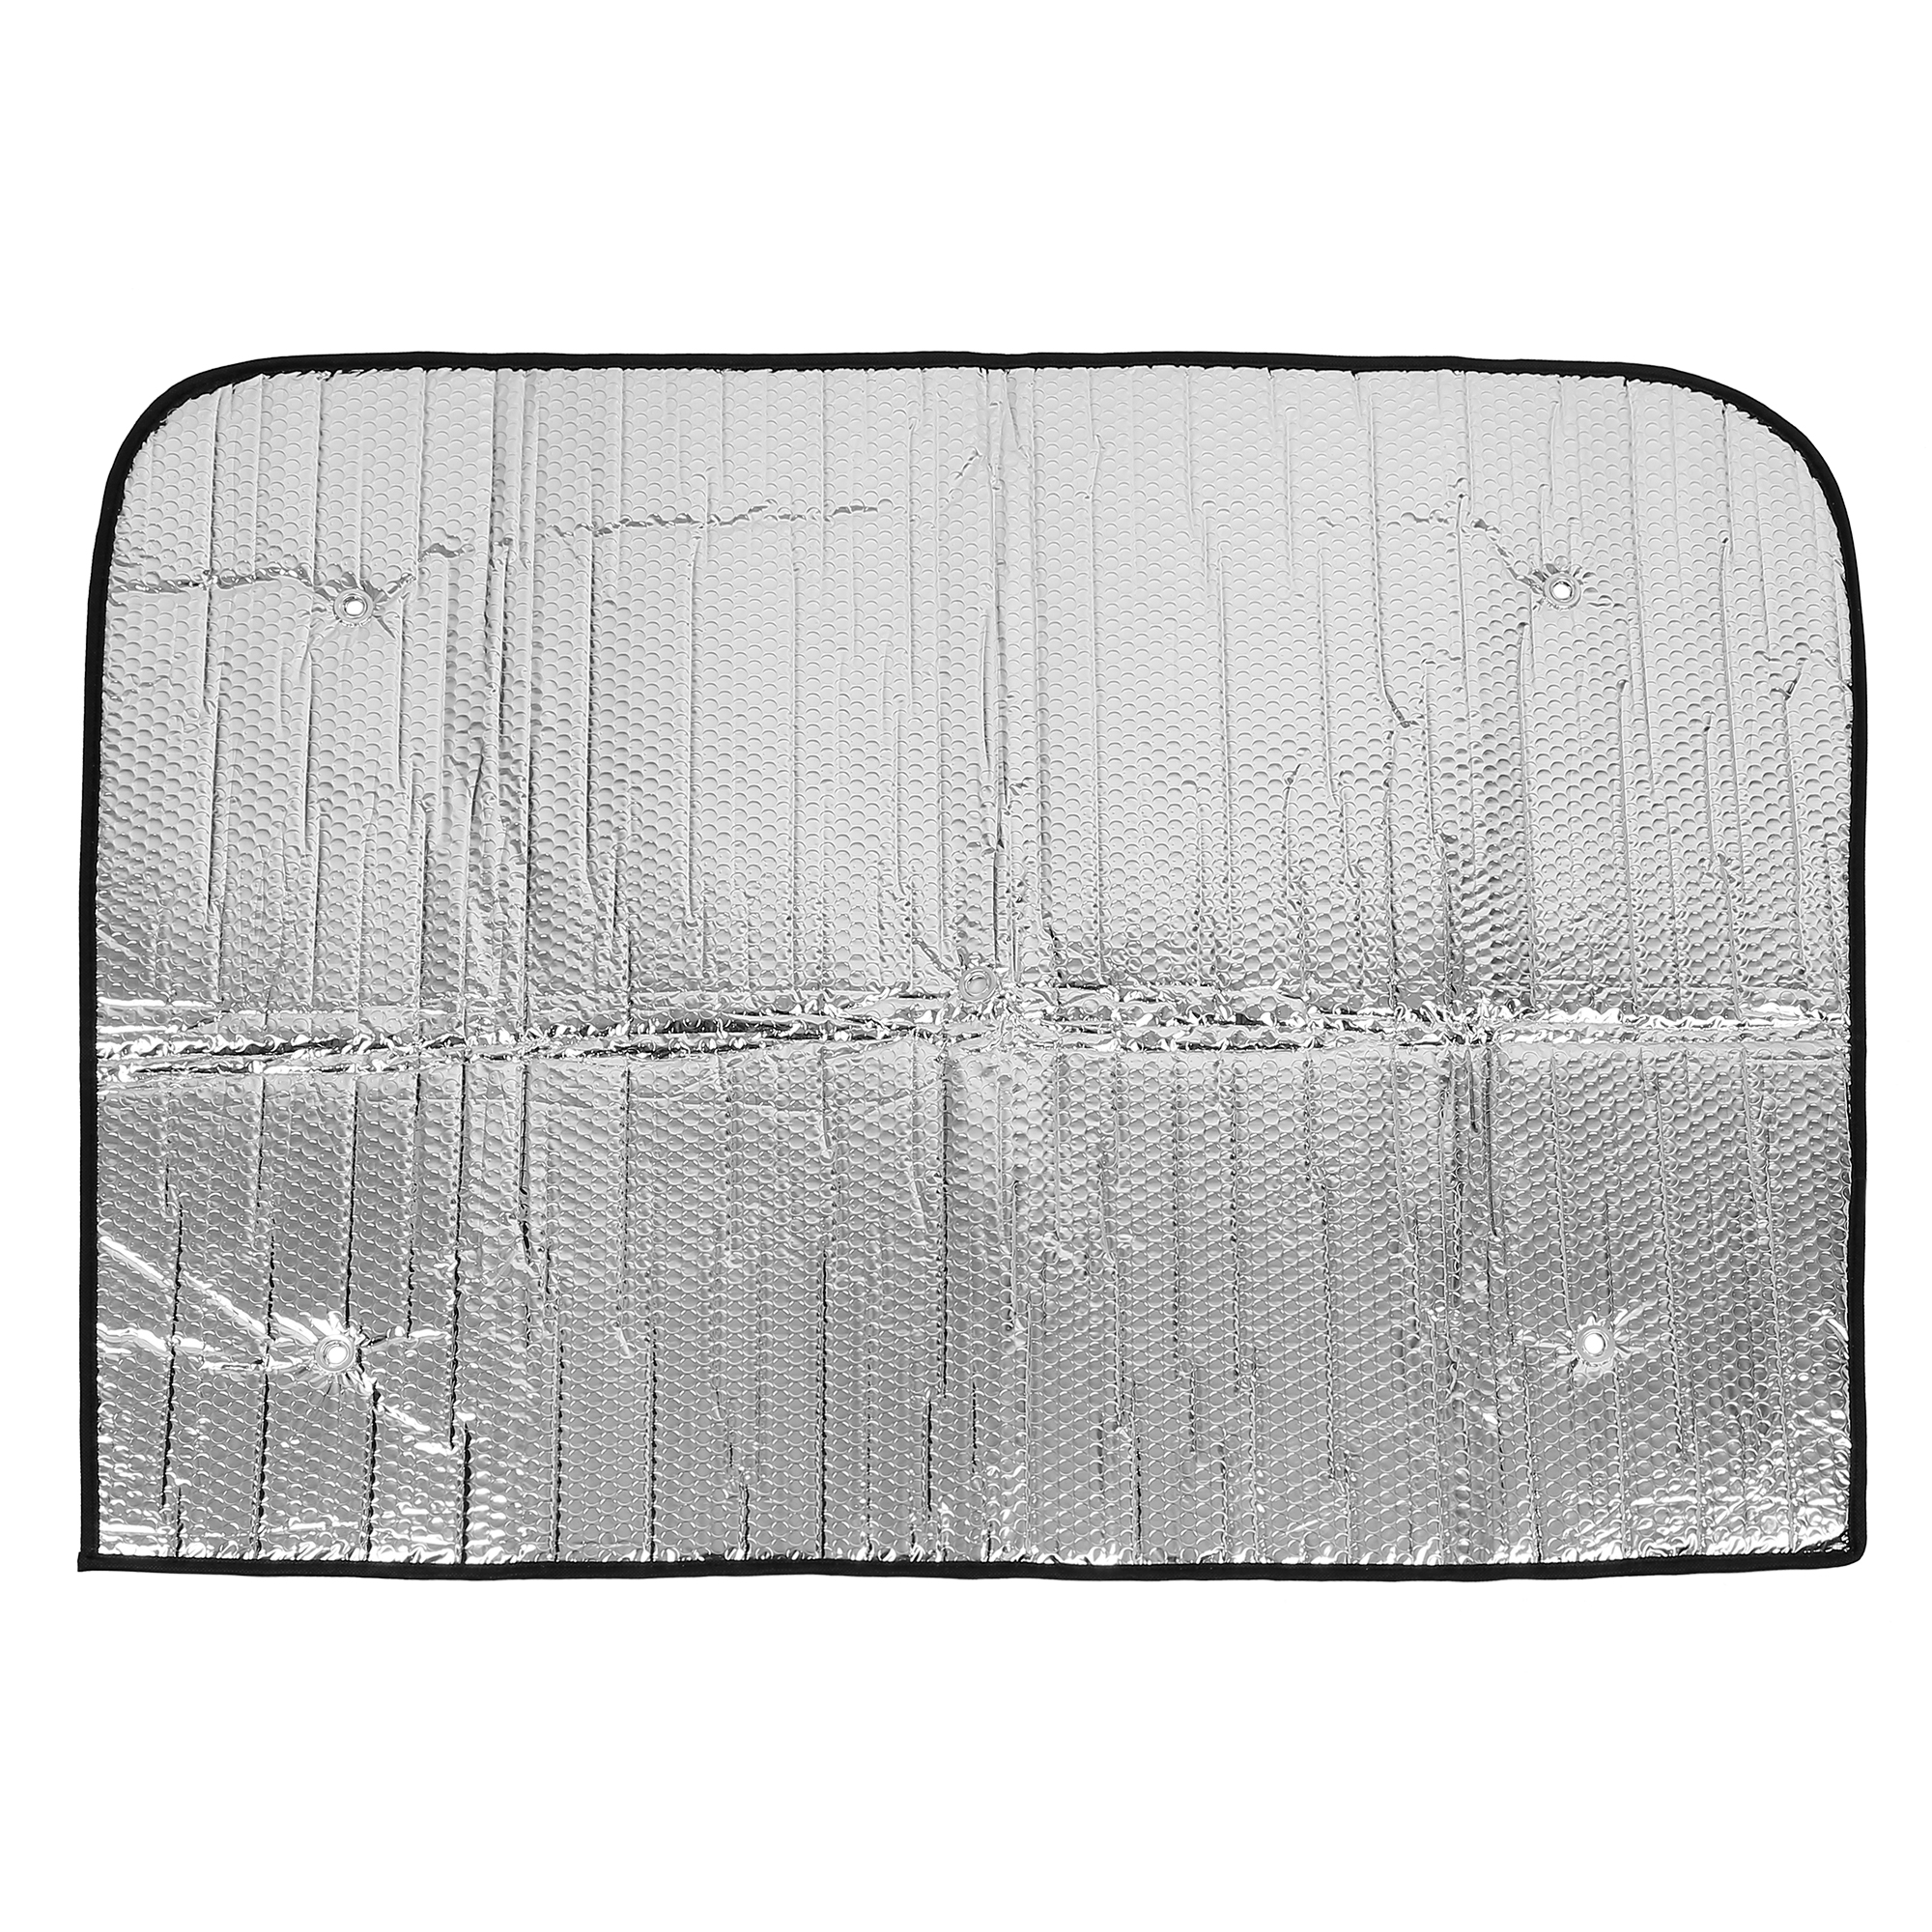 Rear Aluminum Foil Sunroof Shade Cover with Suction Cup for Tesla Model 3